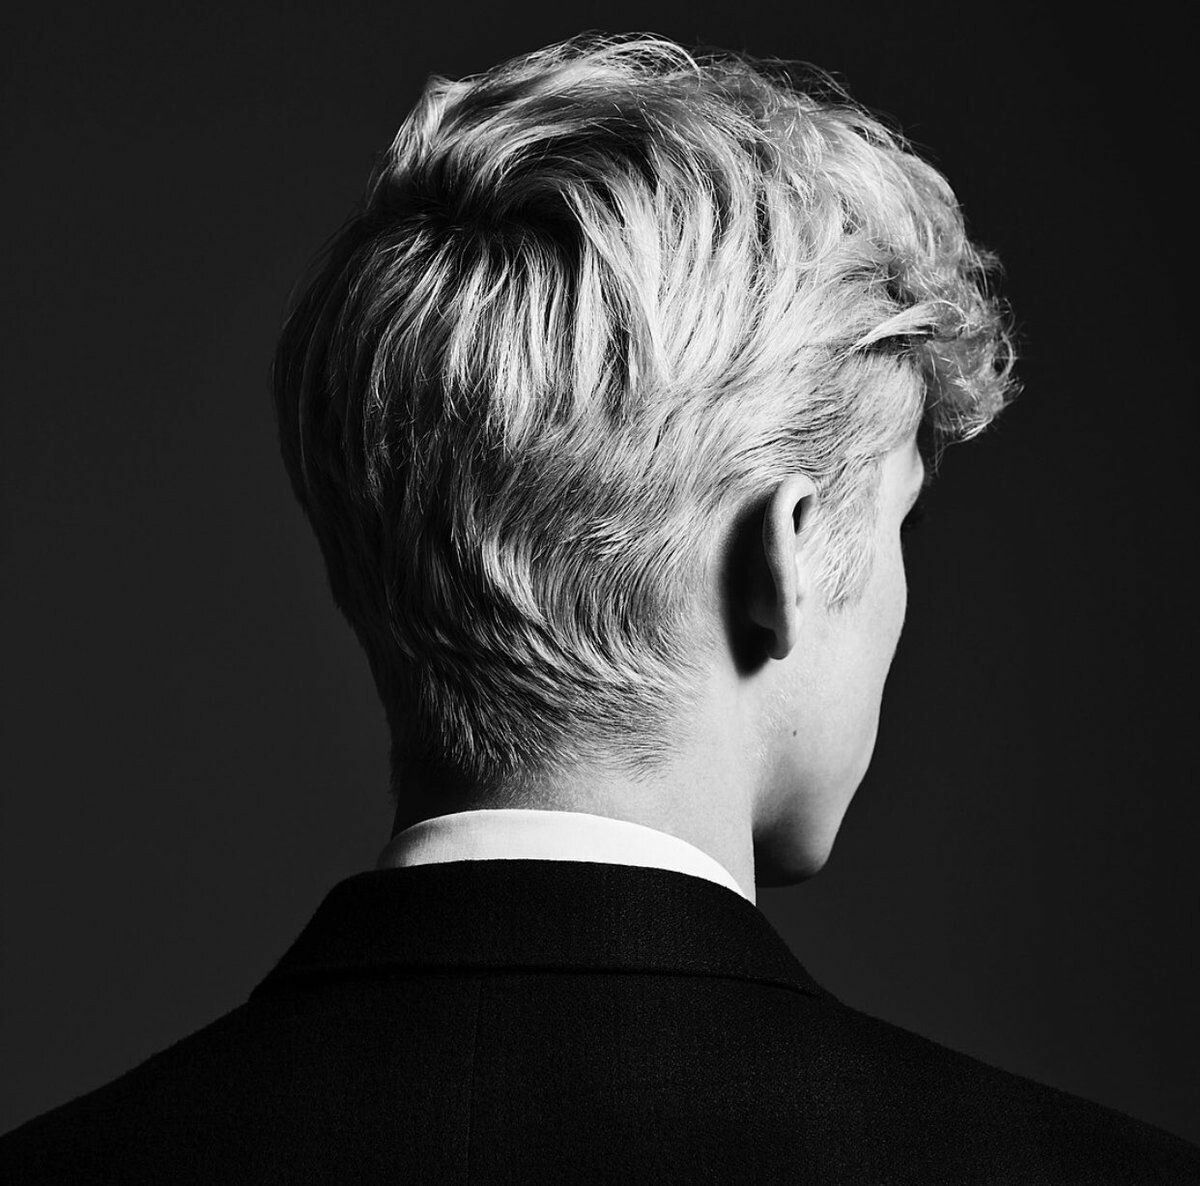 Troye Sivan. Music album cover, Cool album covers, Troye